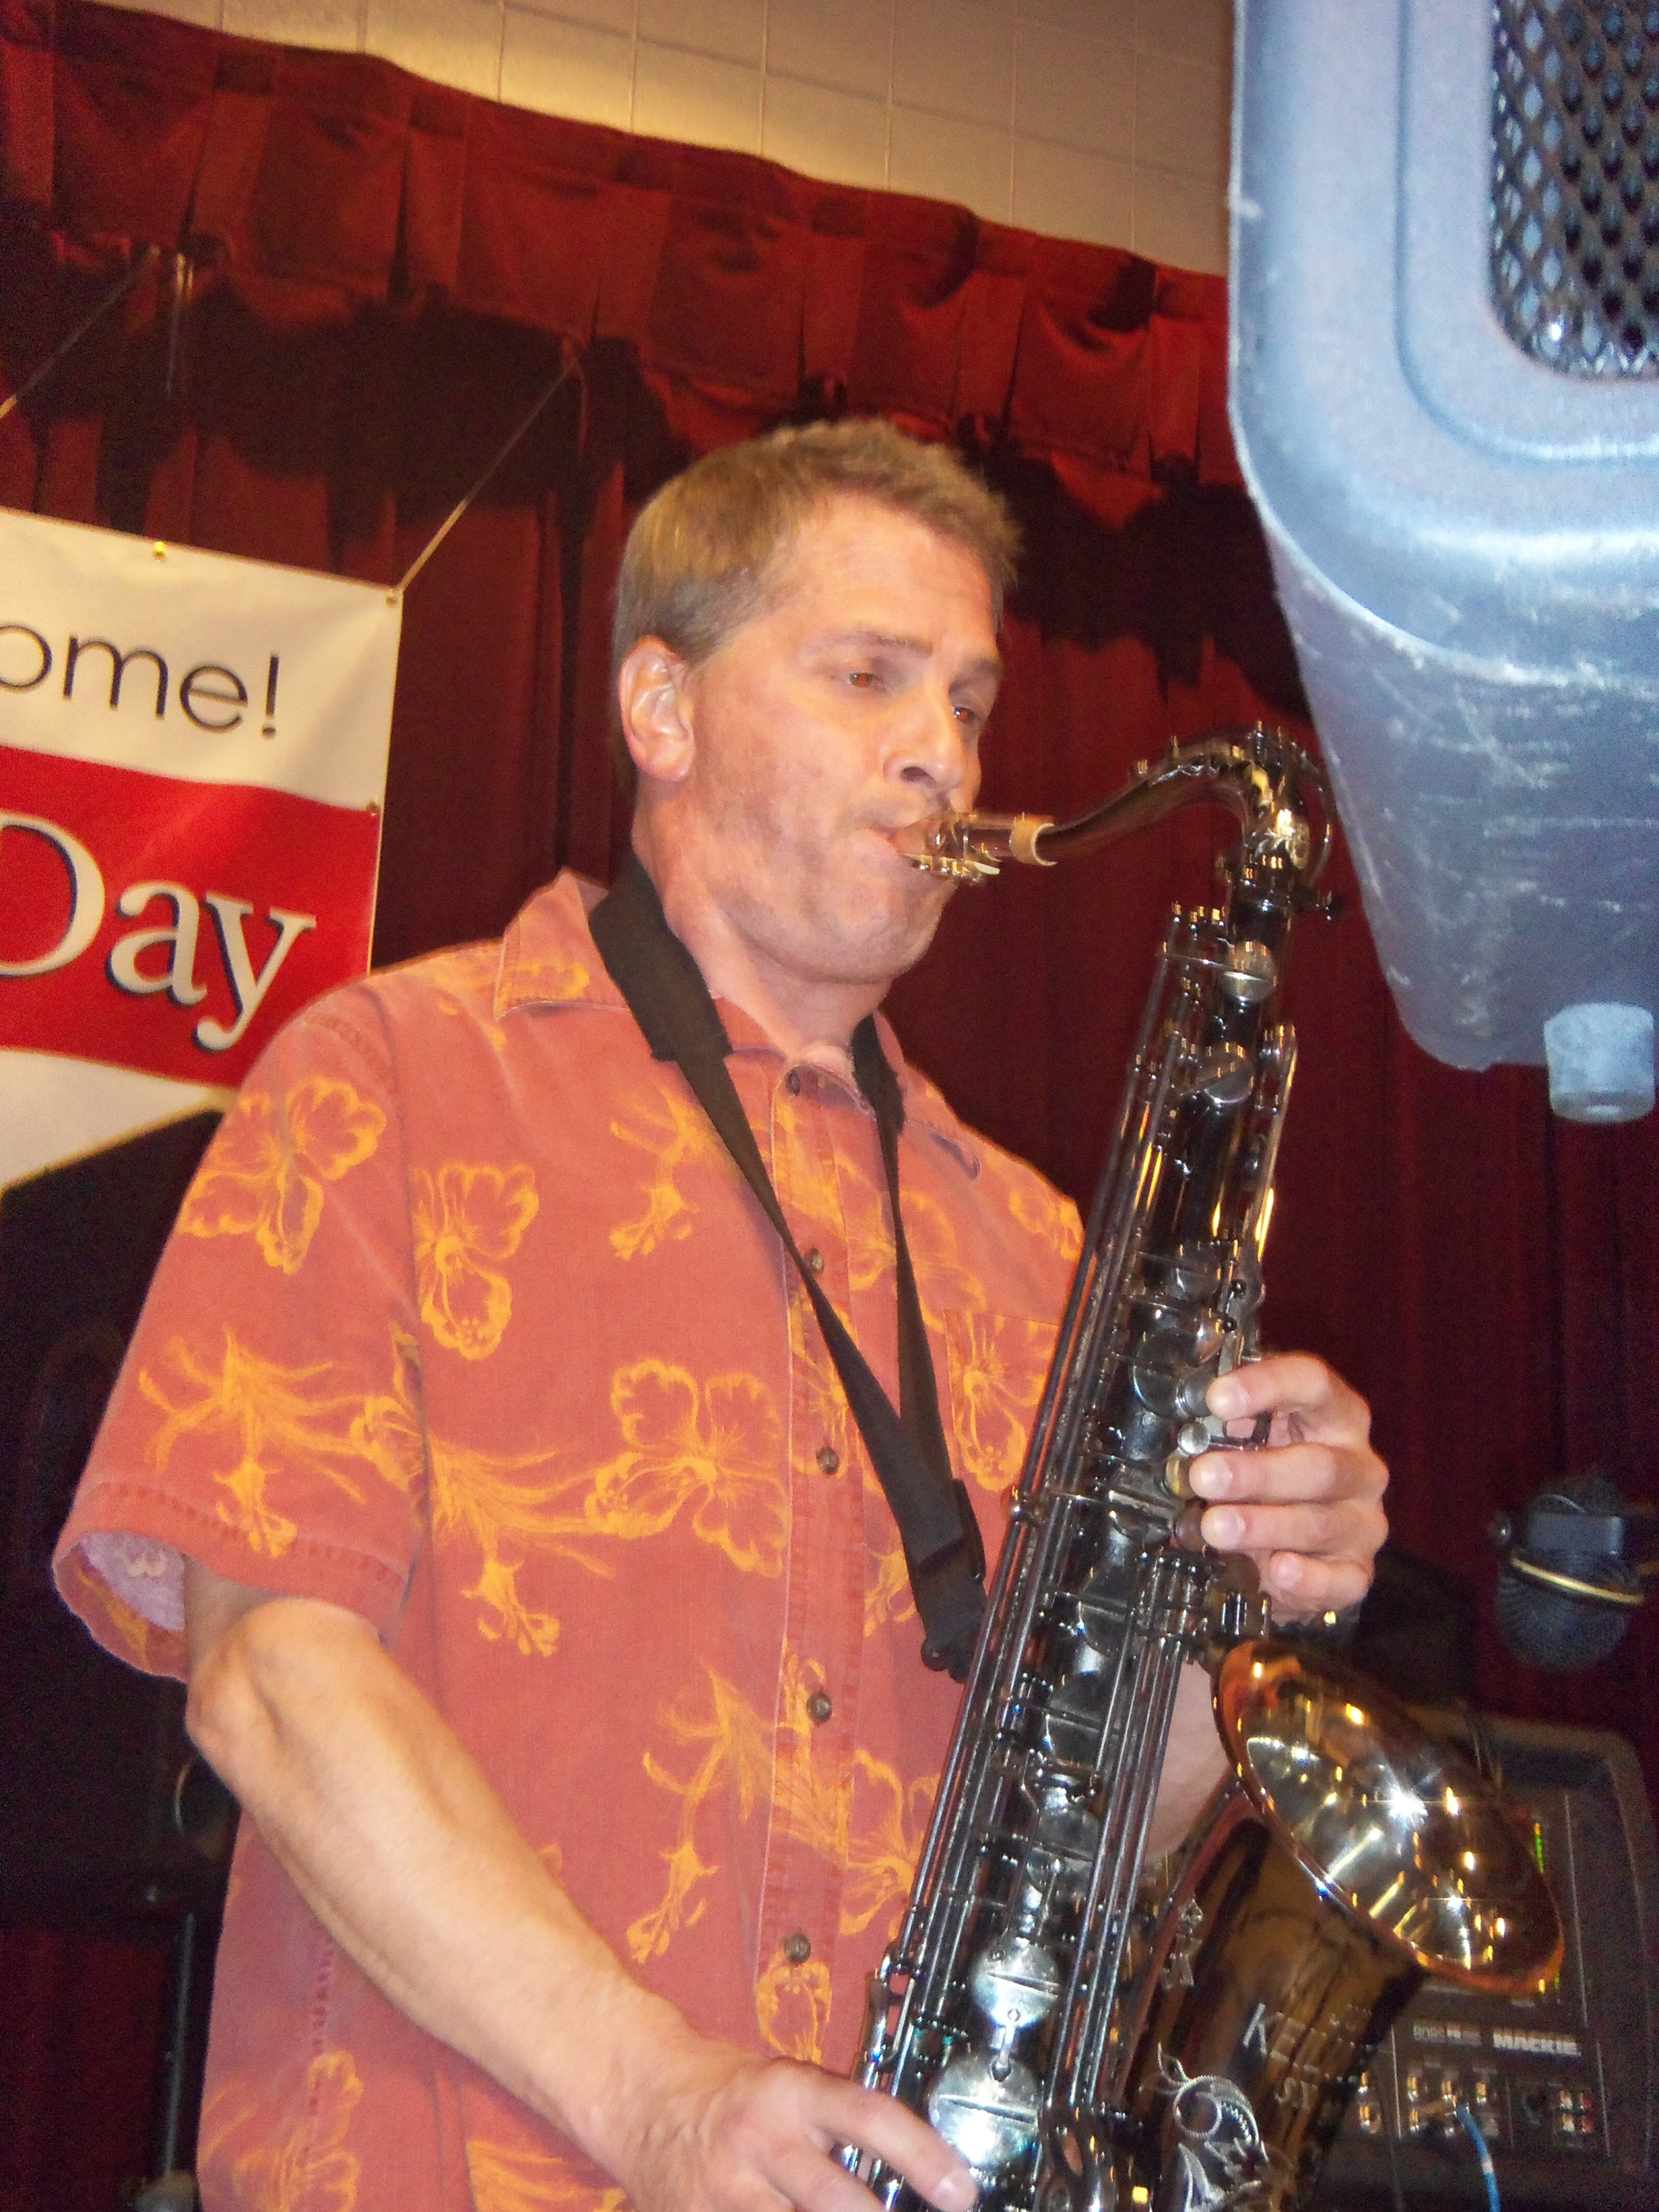 Dave Mitera an outstanding clarinet and sax man!